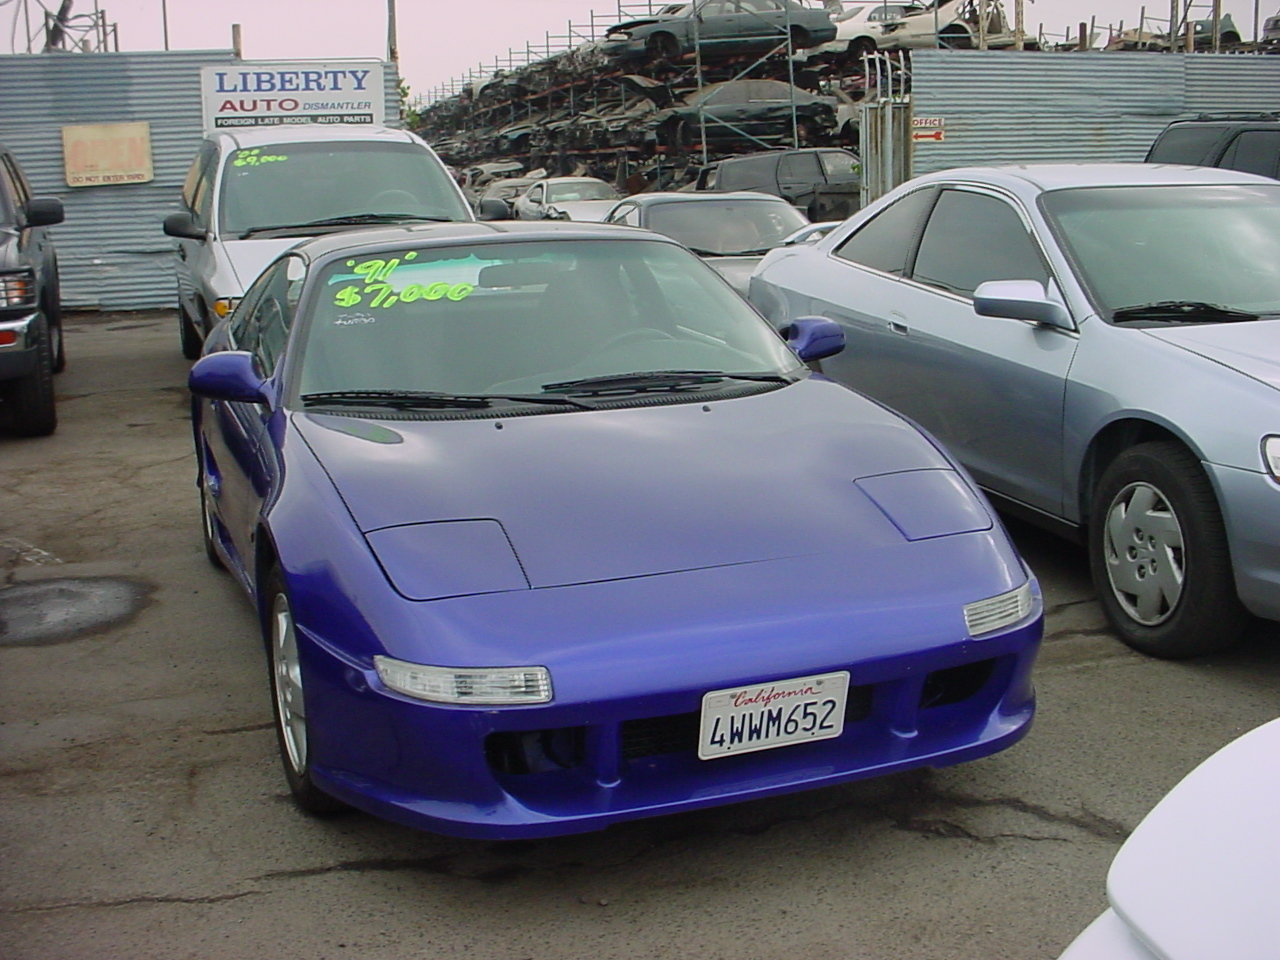 Toyota Mr2 Drgnfenxmr2 Kits I Stumbled On This Nice Purple 1991 At A Used Car Dealer In 2002 Being Sold For 7000 Although Like The Smooth Look Of Molded Body